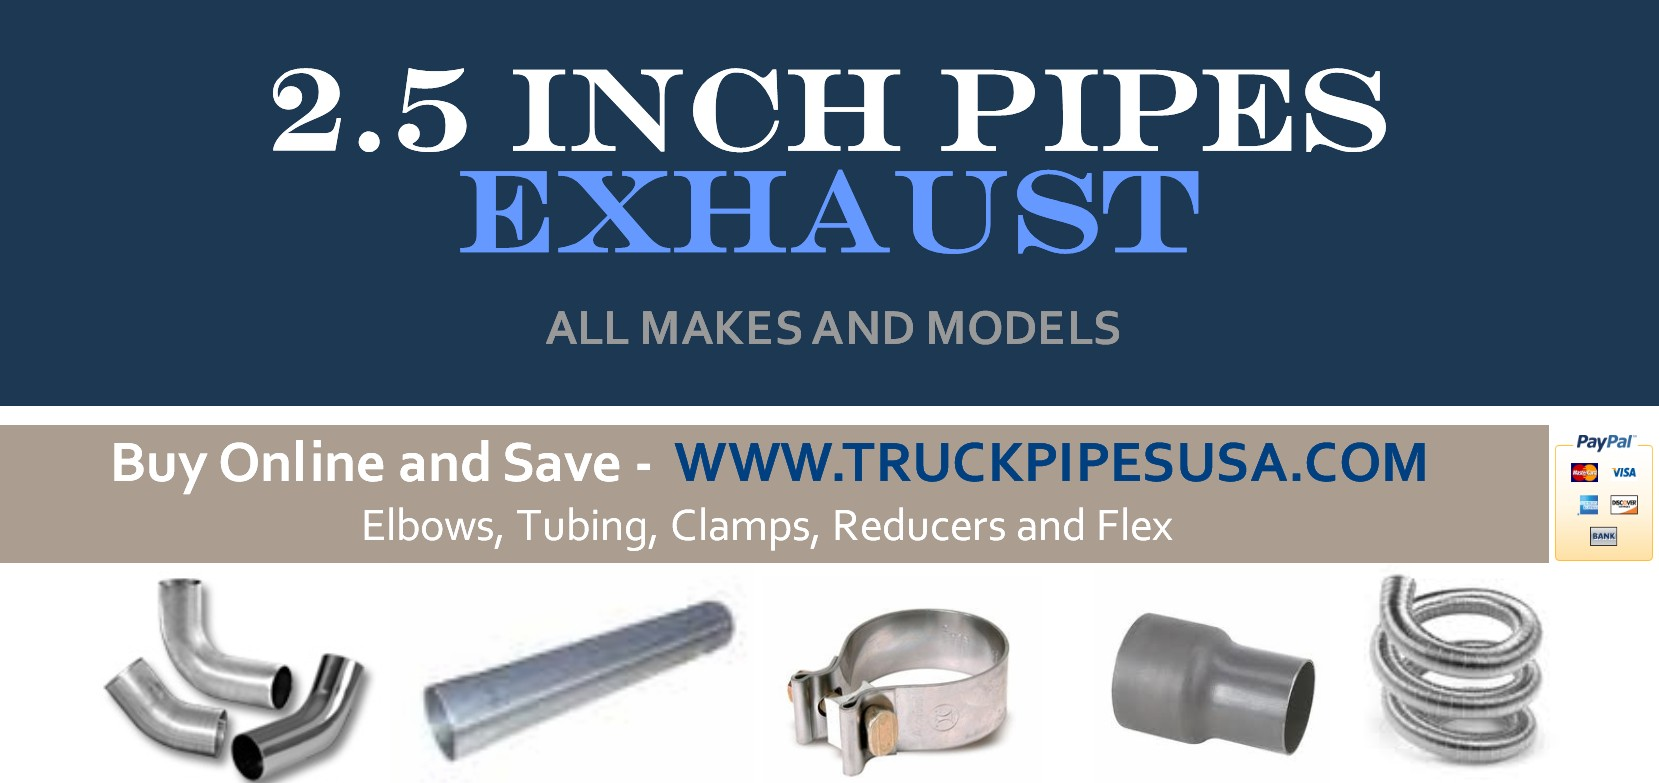 2-5-inch-exhaust-pipes-for-big-rig-trucks-from-truckpipesusa.jpg